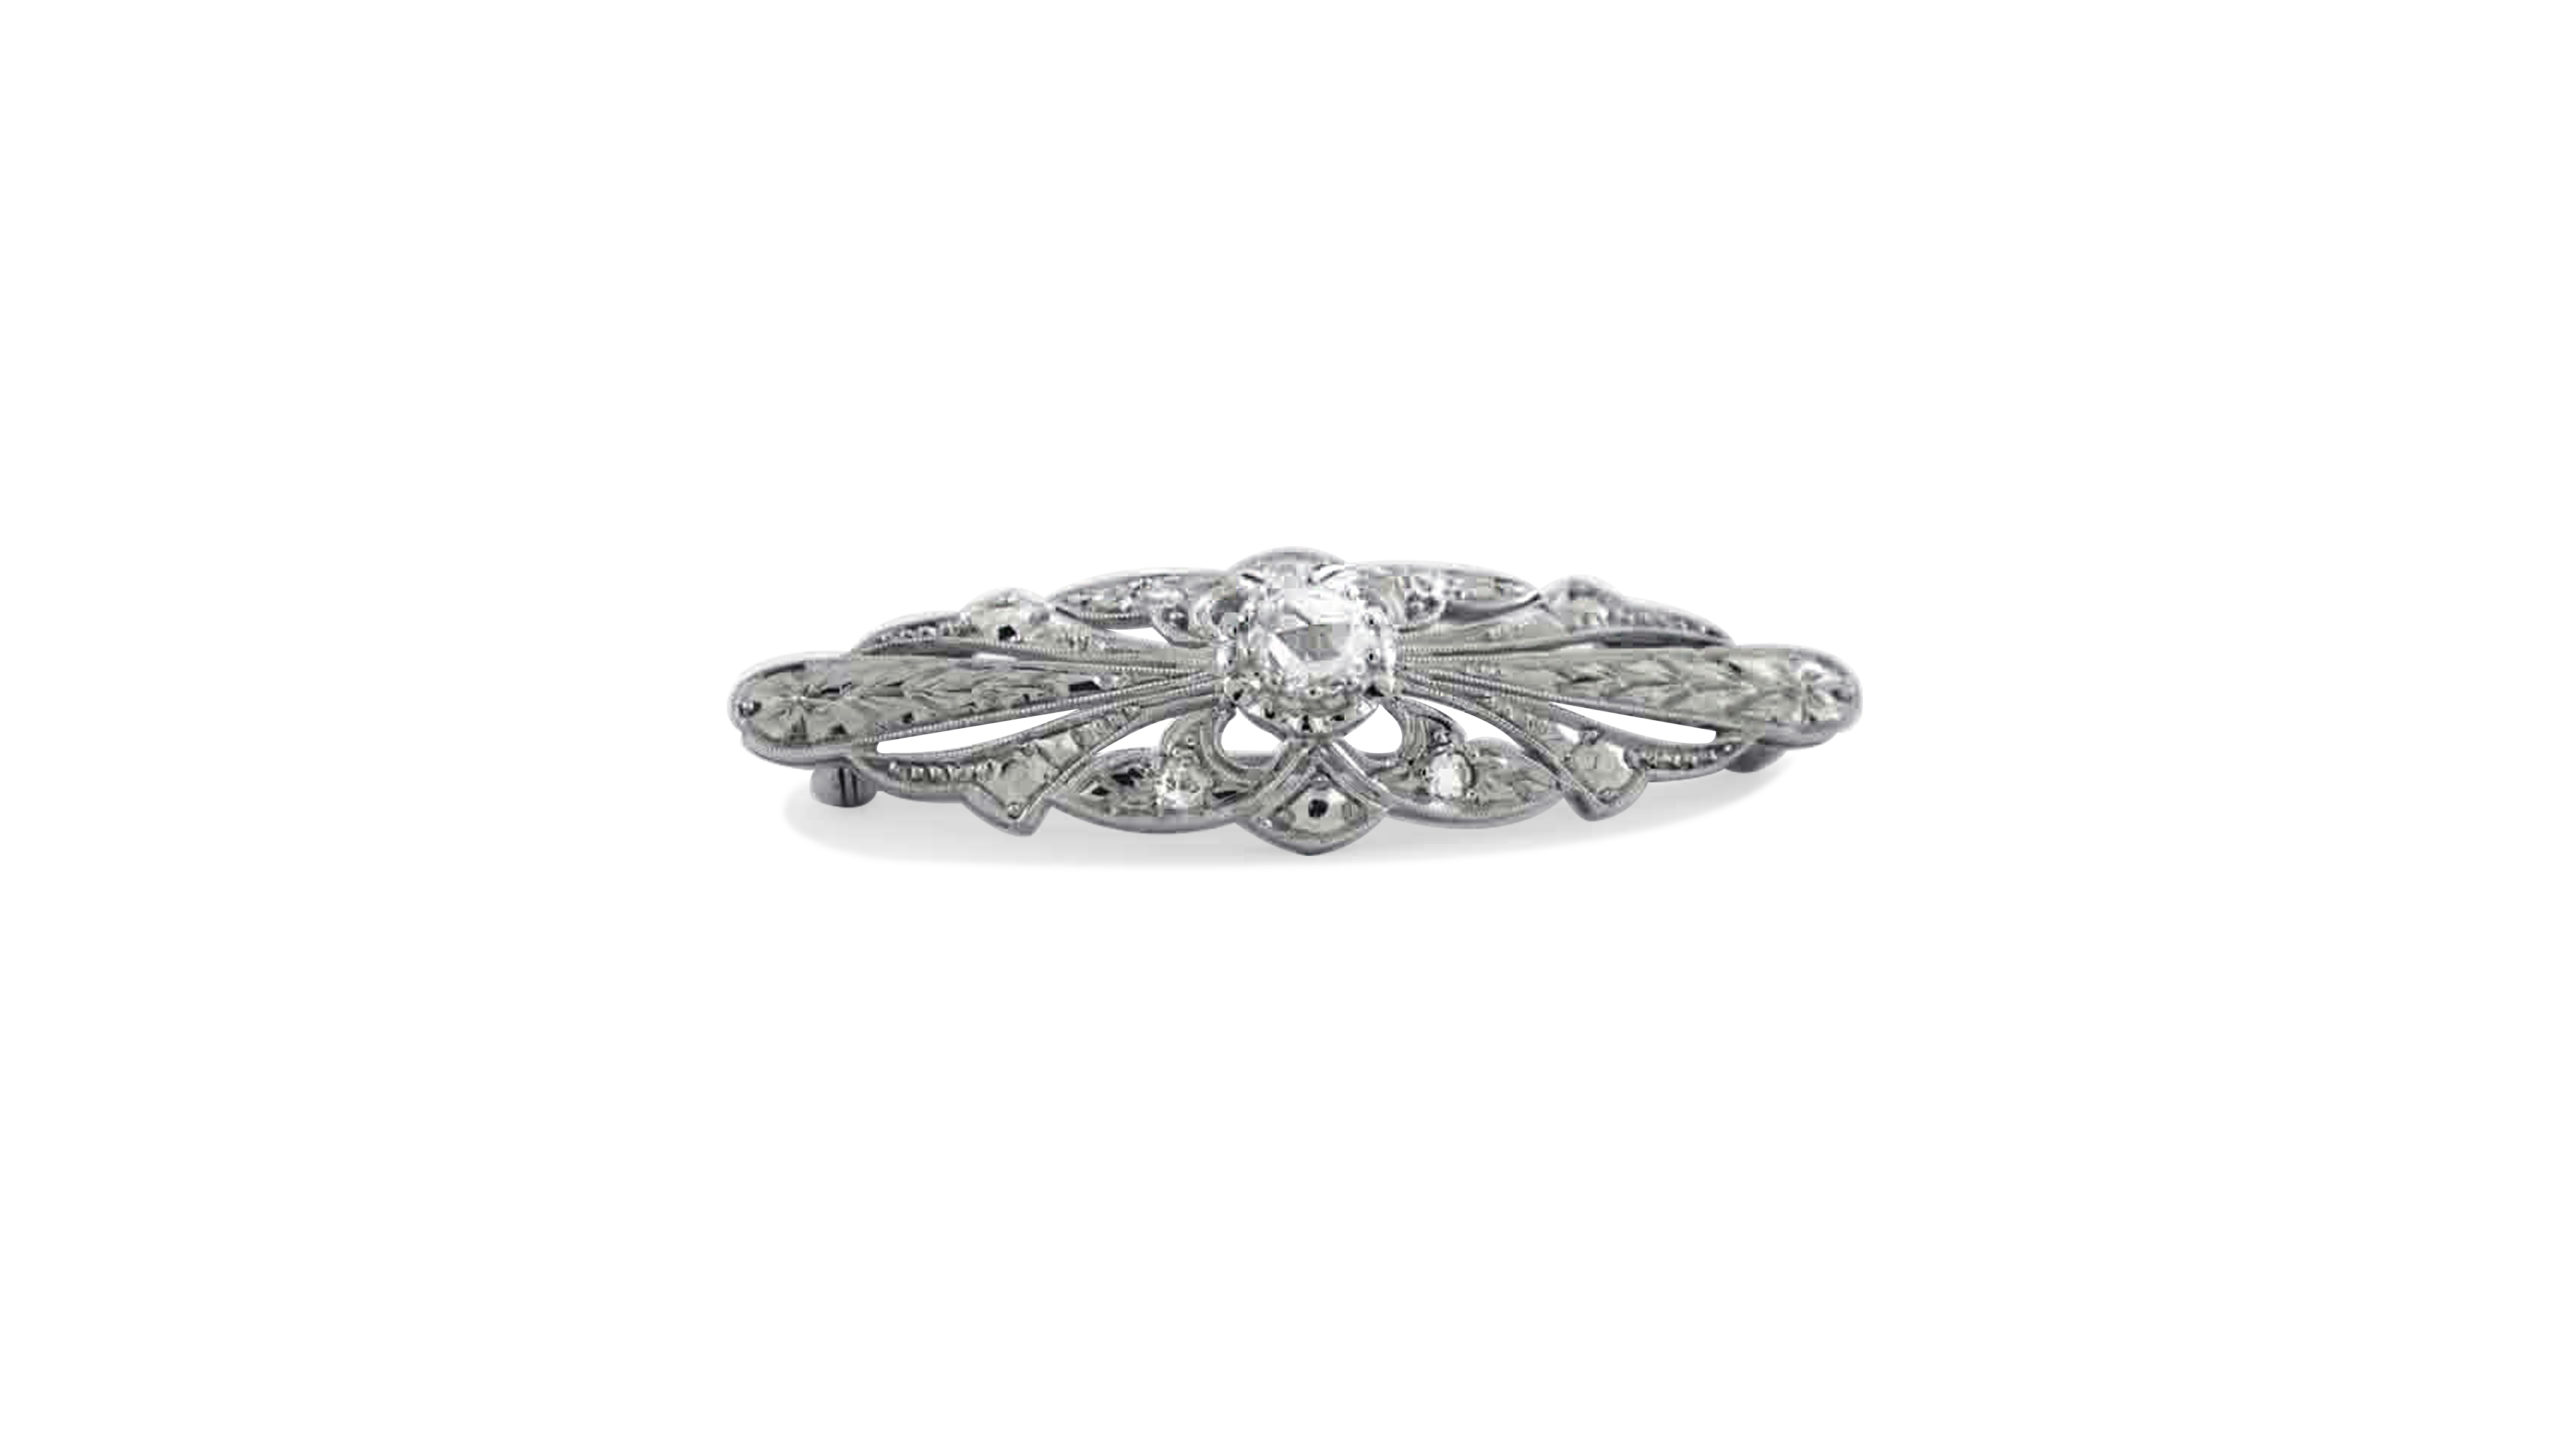 vintage rose-cut diamond brooch crafted in 14 and 18 carat white gold | Diamond jewellery | Antique diamond brooch